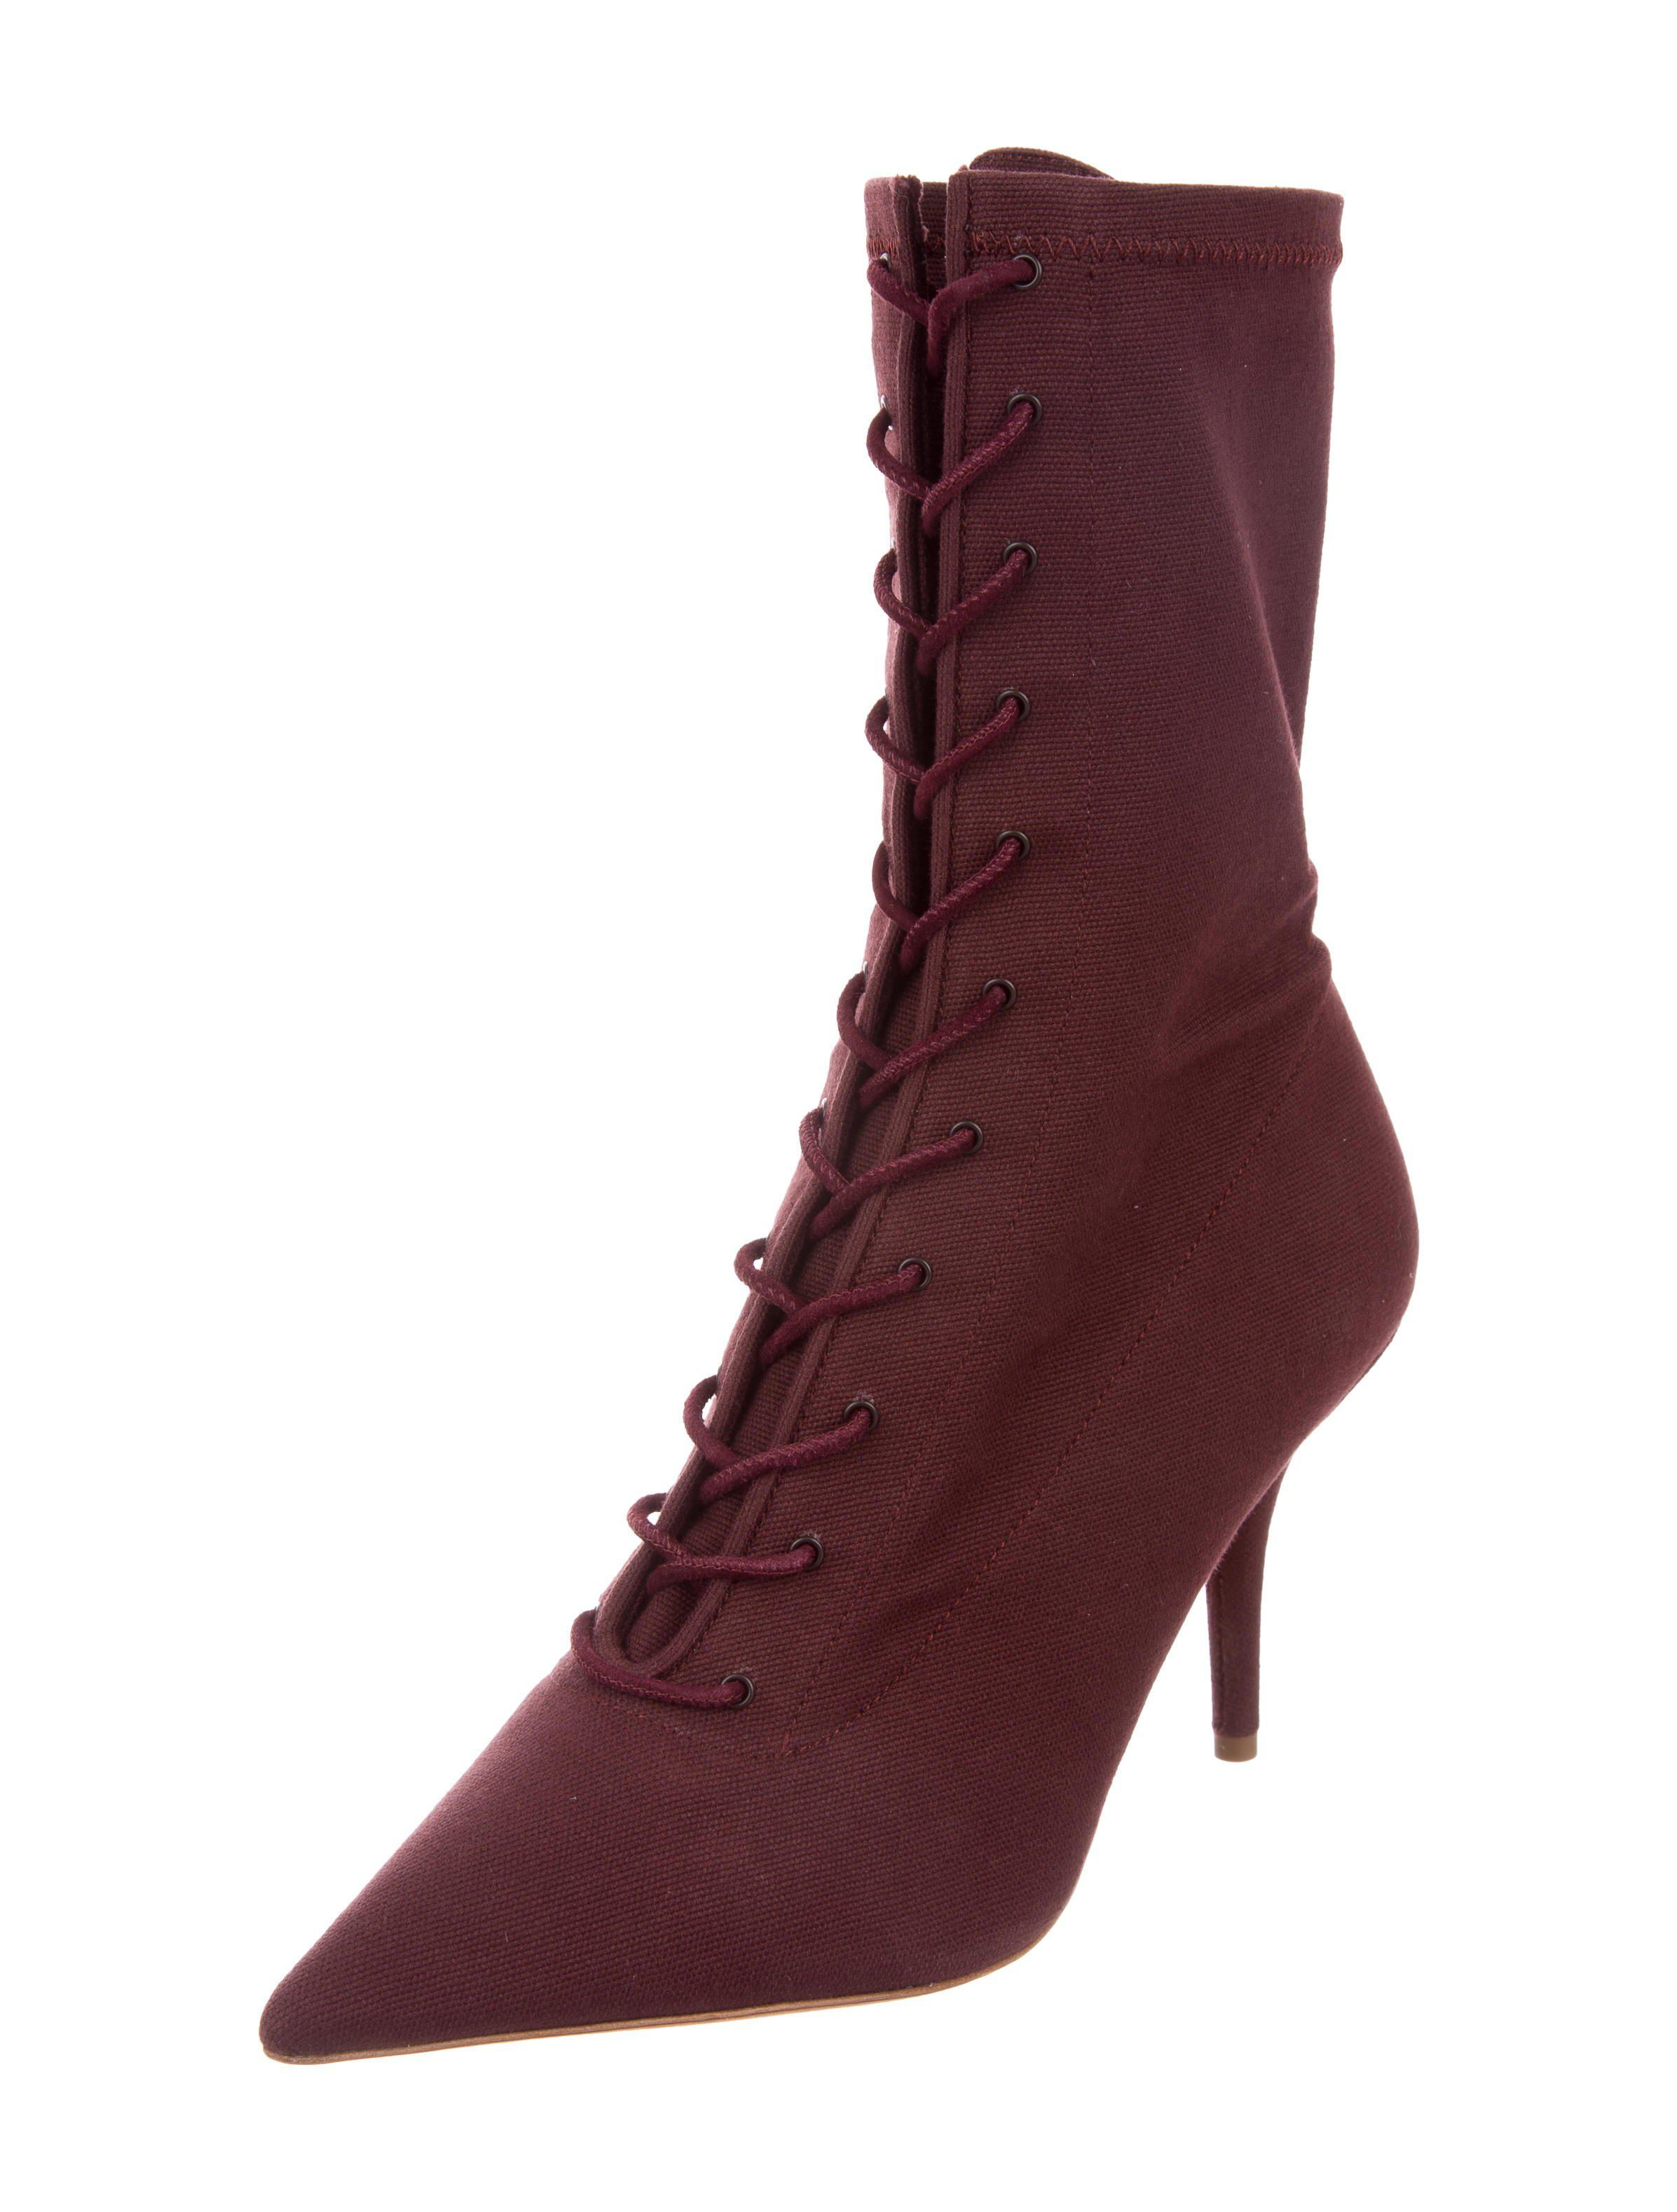 818b1e3544dc1 Lyst - Yeezy Season 5 Ankle Boots W  Tags Burgundy in Red